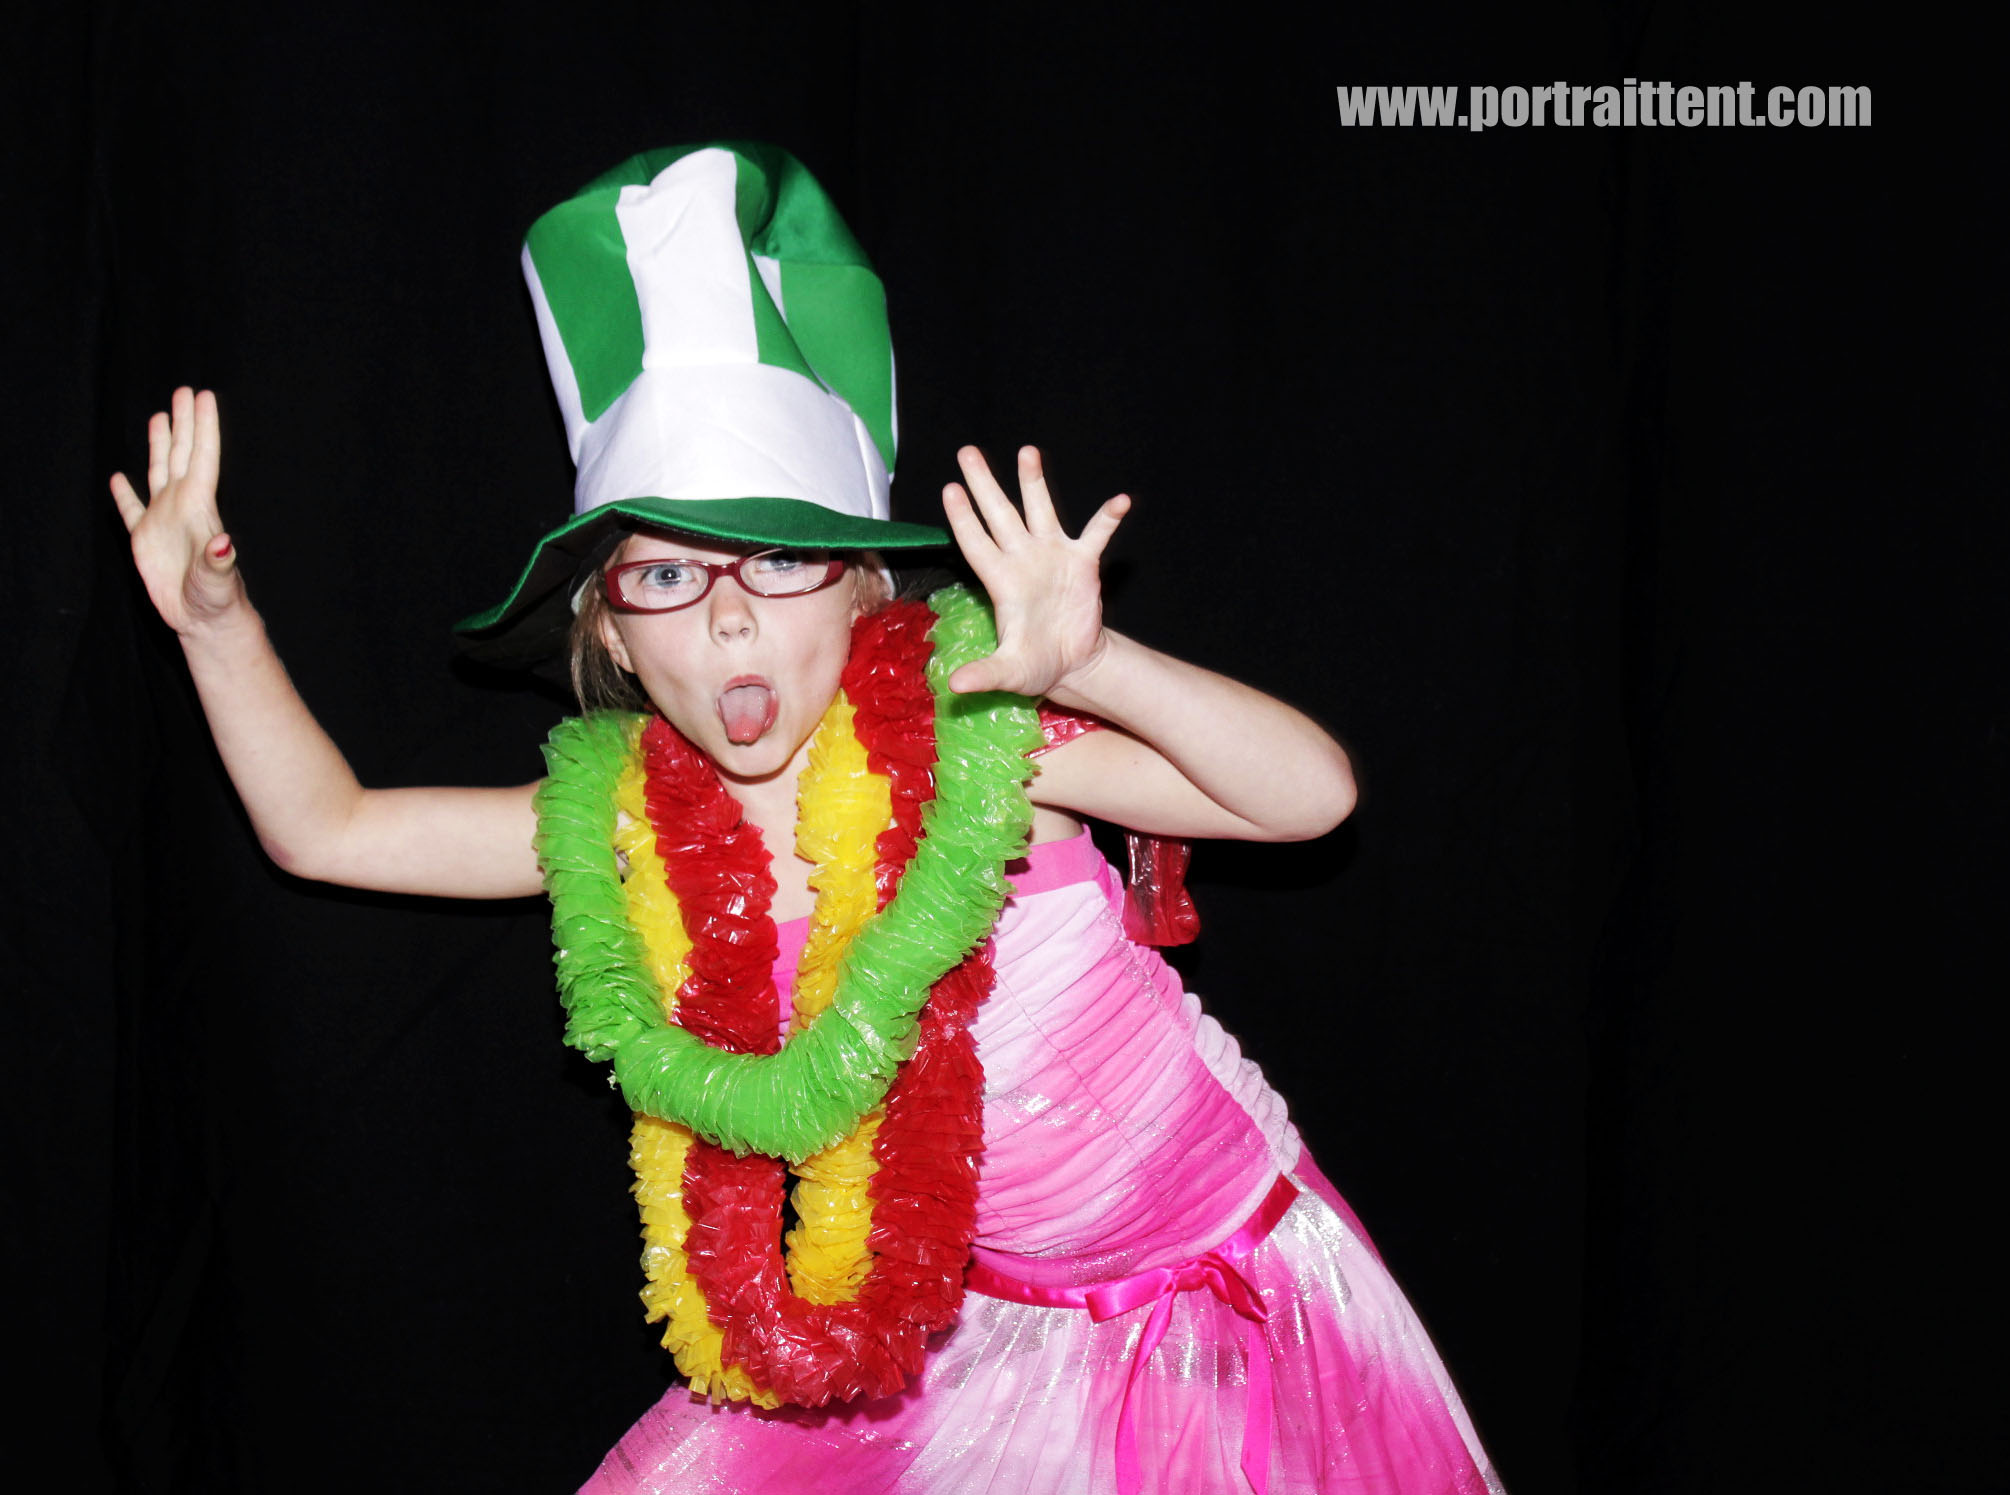 Photobooth_portraittent30_photography_daytona_beach_photo_booth_jacksonville_miami_orlando_florida.original.original